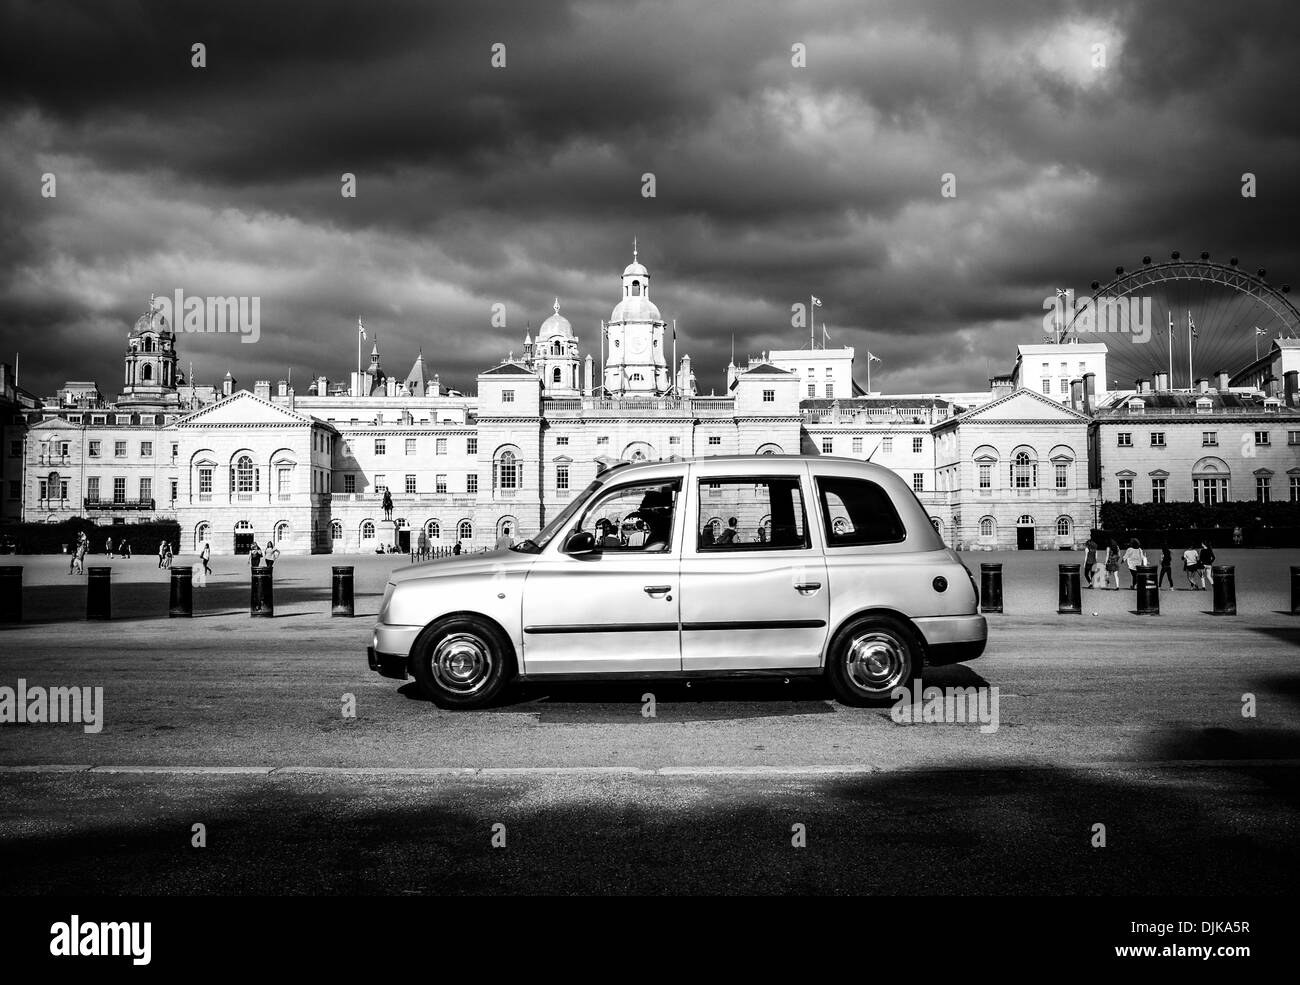 Taxi en face de Horse Guards Parade, Londres, Angleterre Photo Stock